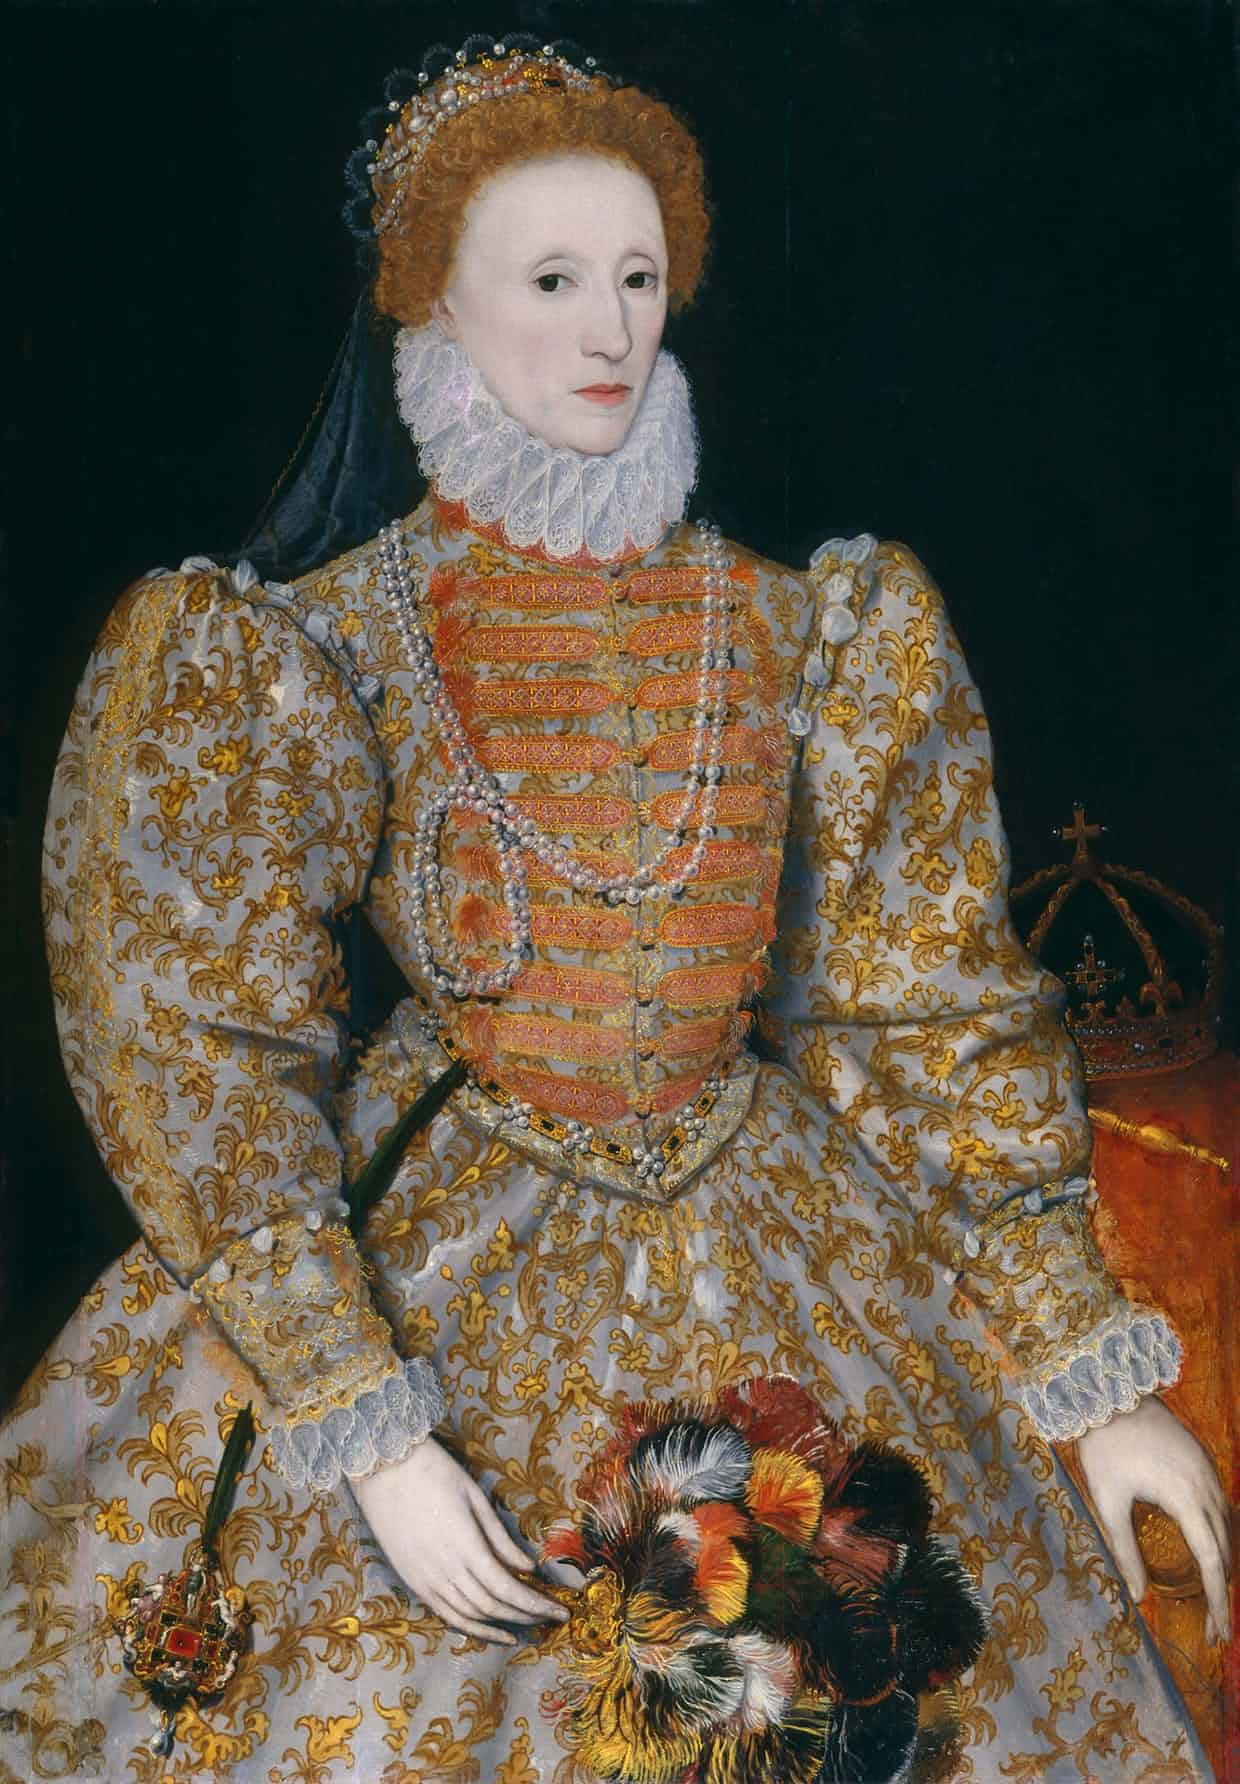 Queen Elizabeth I by Unknown continental artist, circa 1575. Photograph: National Portrait Gallery London